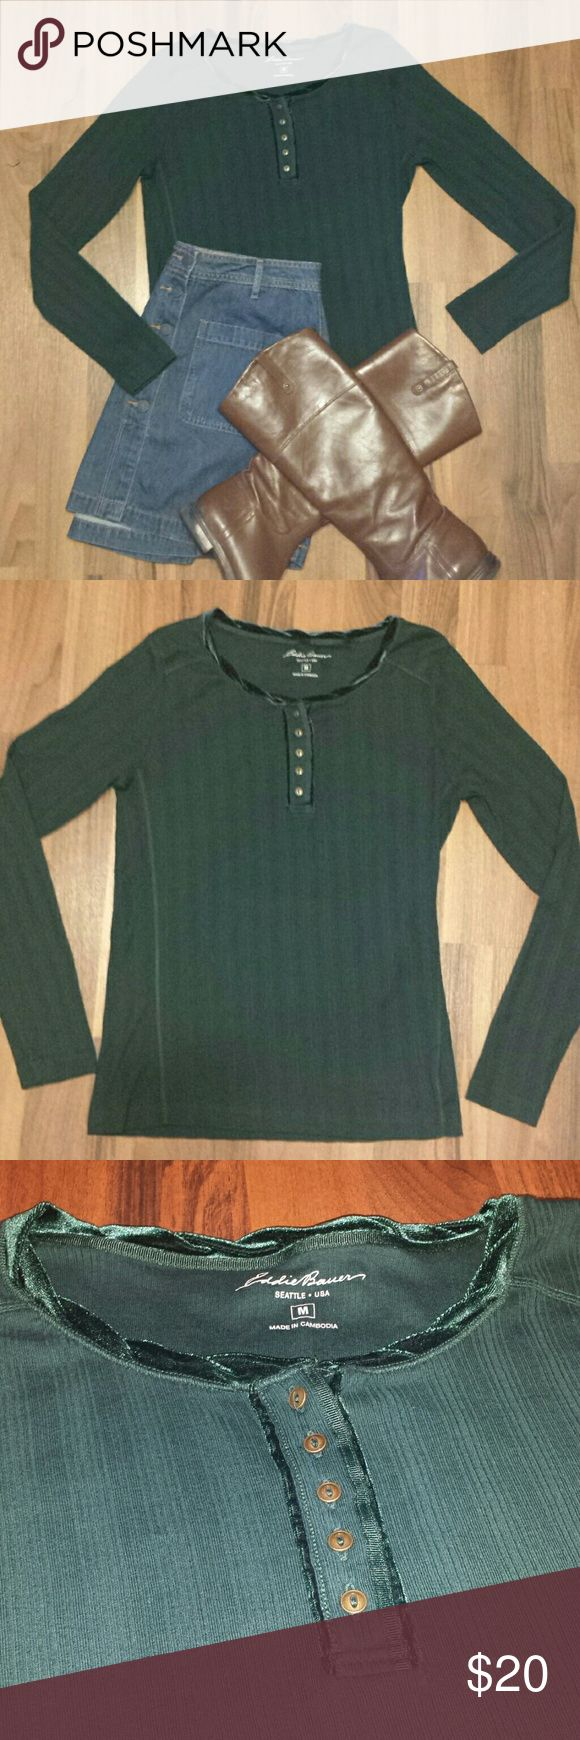 {Eddie Bauer} Henley Gorgeous emerald green long sleeve top features pretty buttons and neckline trimmed in velvet. Looks great with a denim skirt & boots, khaki shorts & hiking boots or with jeans & booties.  Excellent condition, no signs of wear. 100% Cotton Eddie Bauer Tops Tees - Long Sleeve